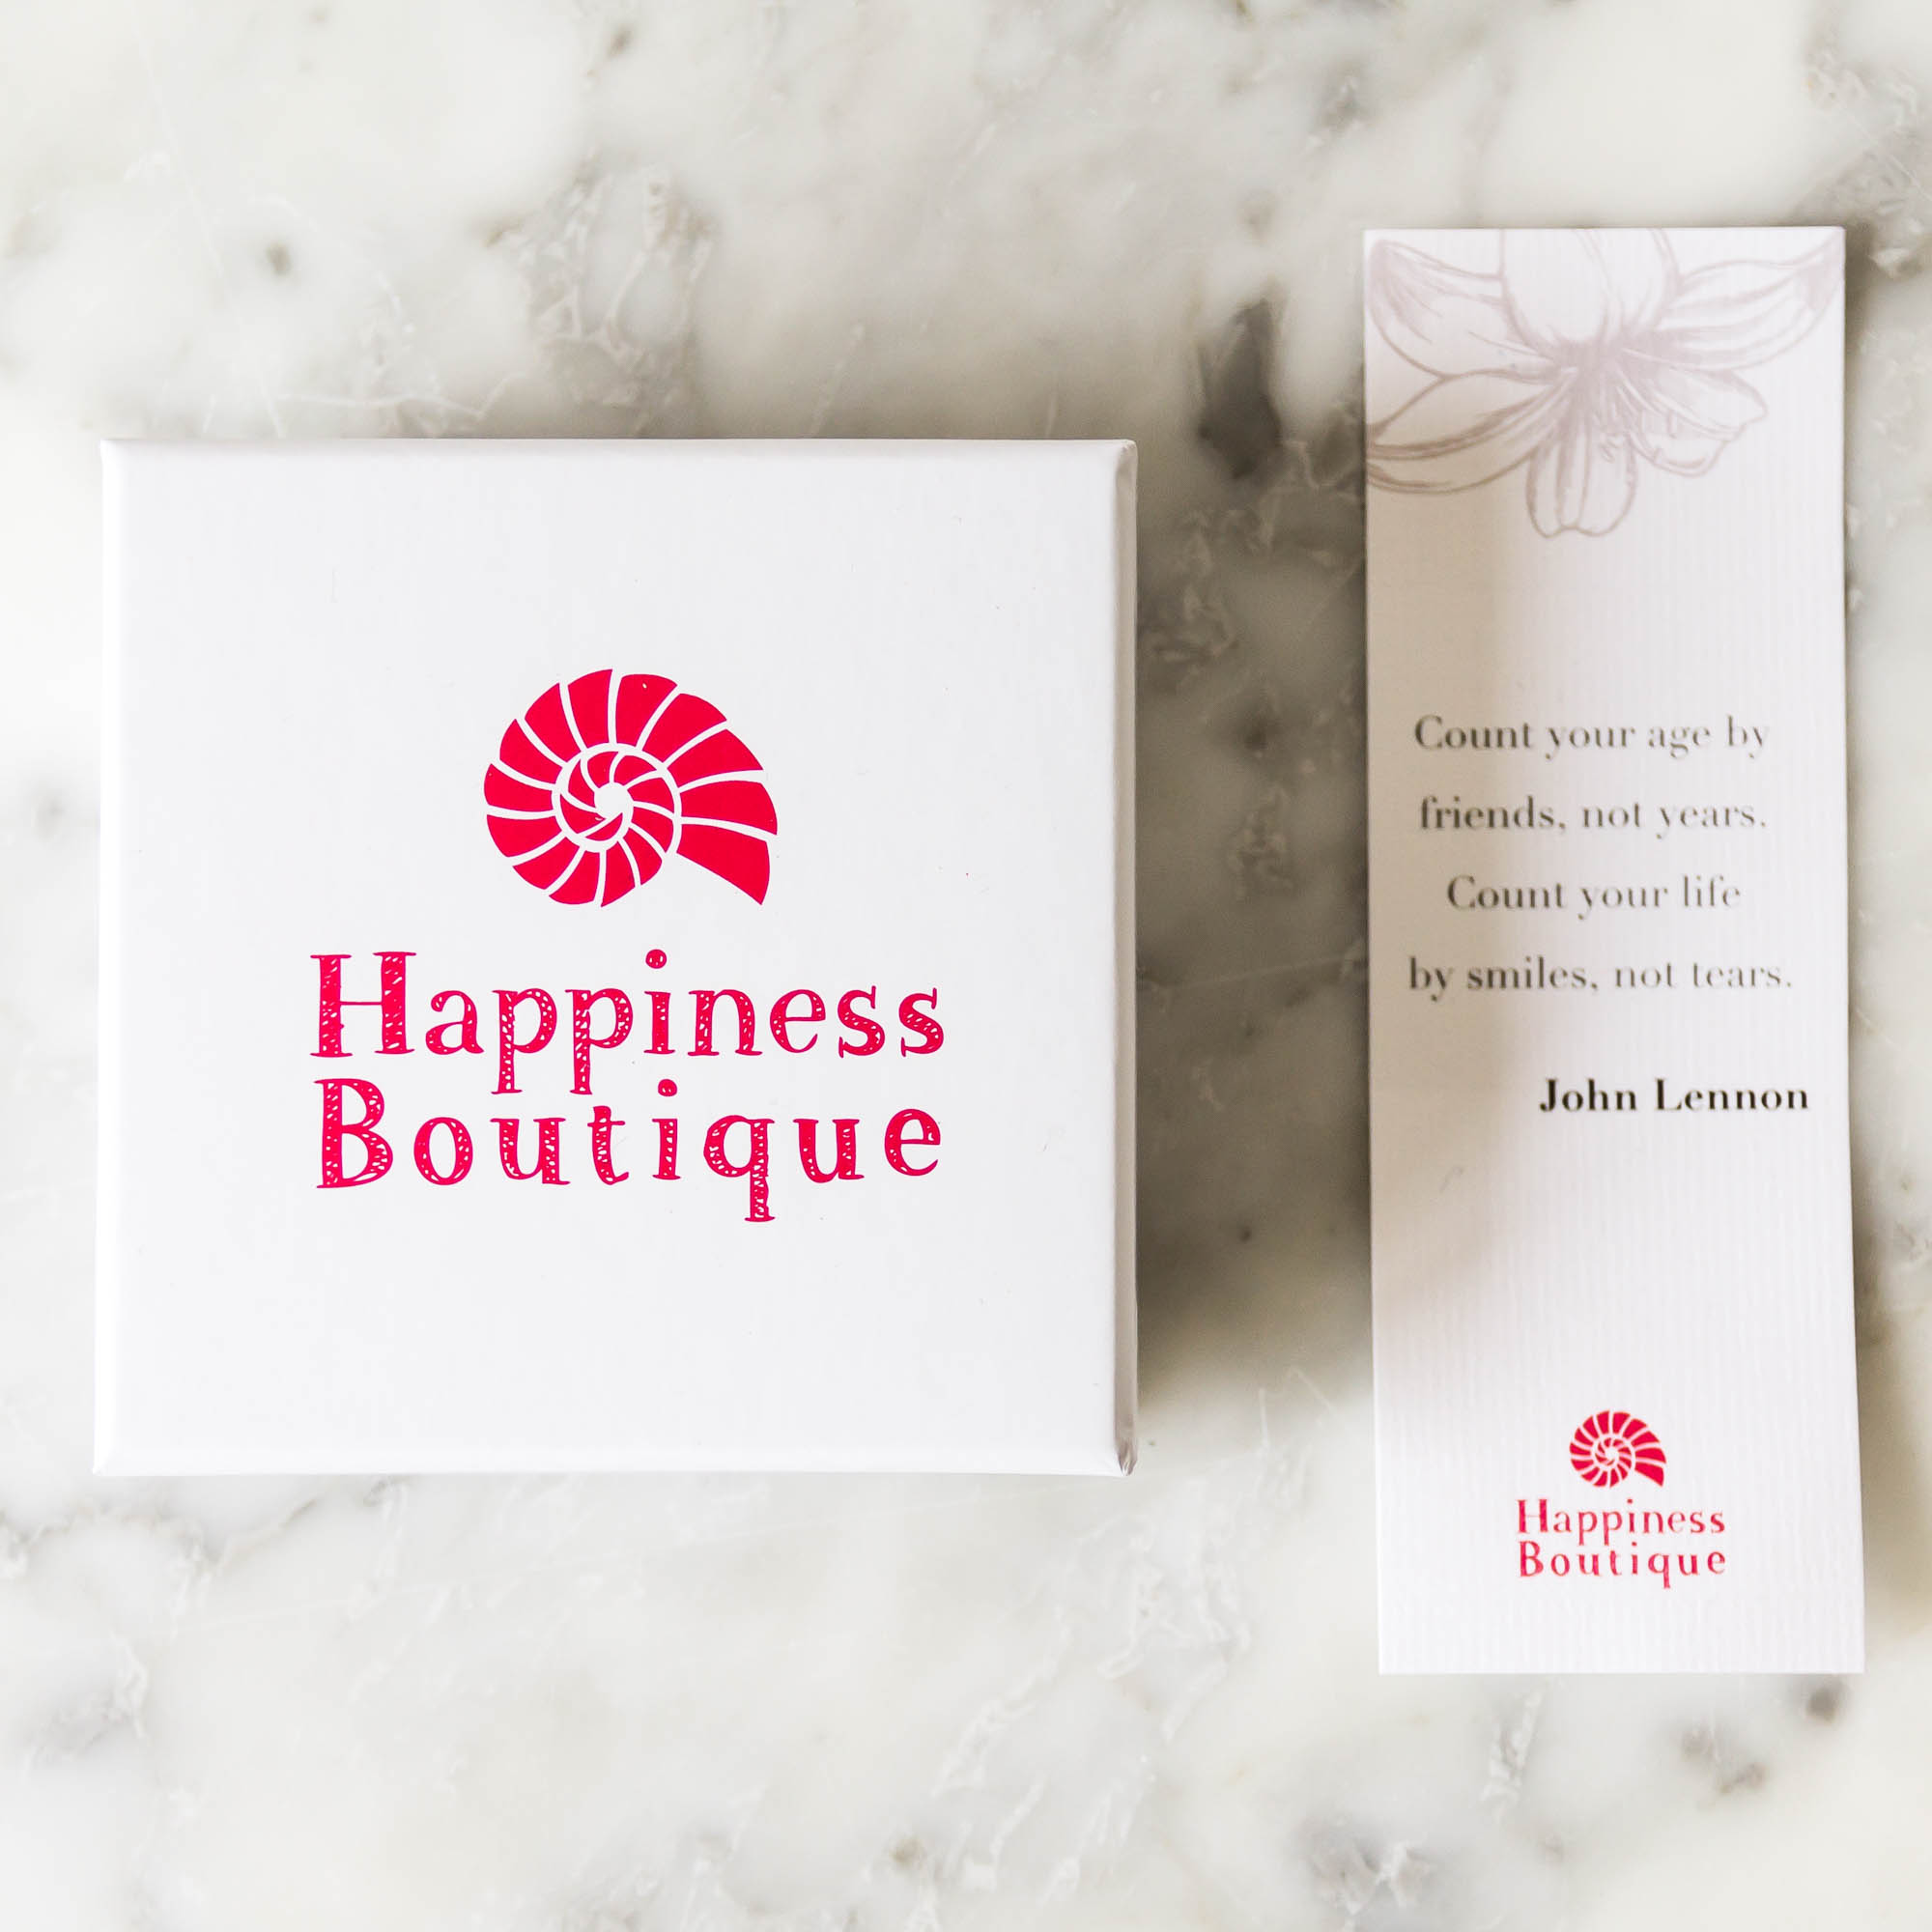 Happiness Boutique